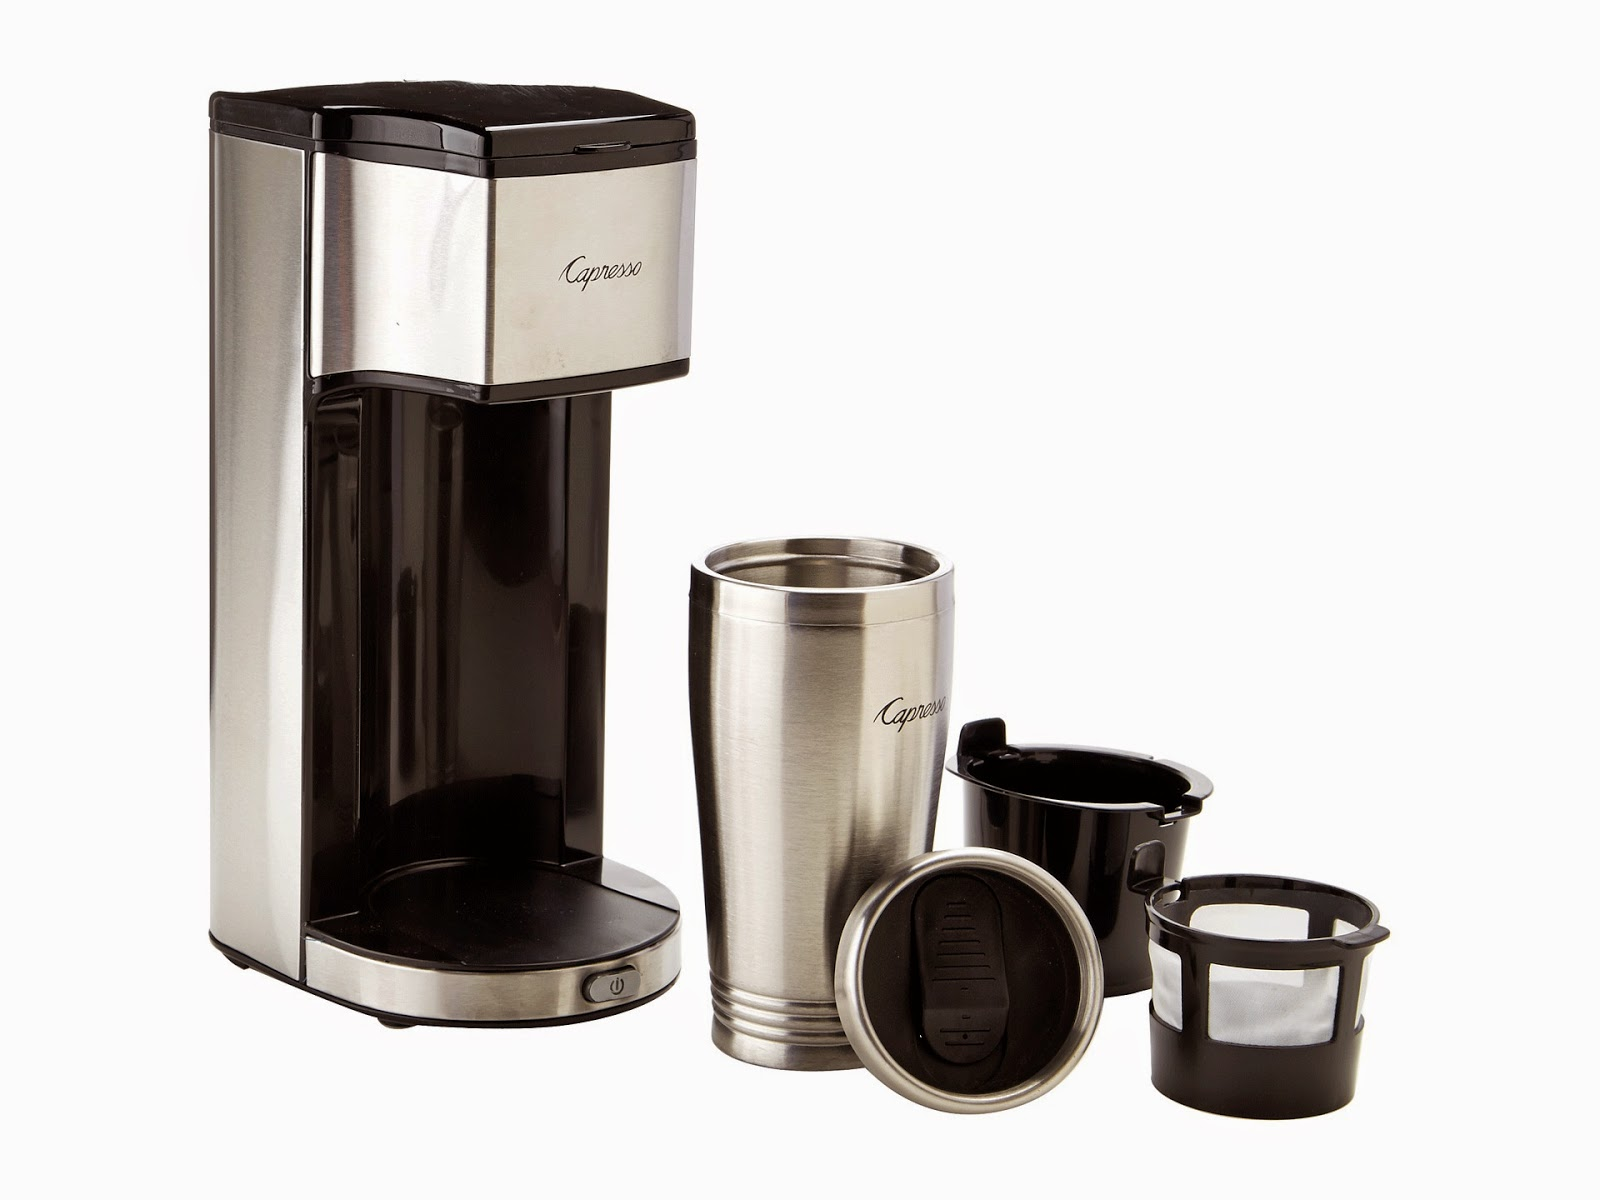 Top Notch Material: Capresso On-the-Go Personal Coffee Maker